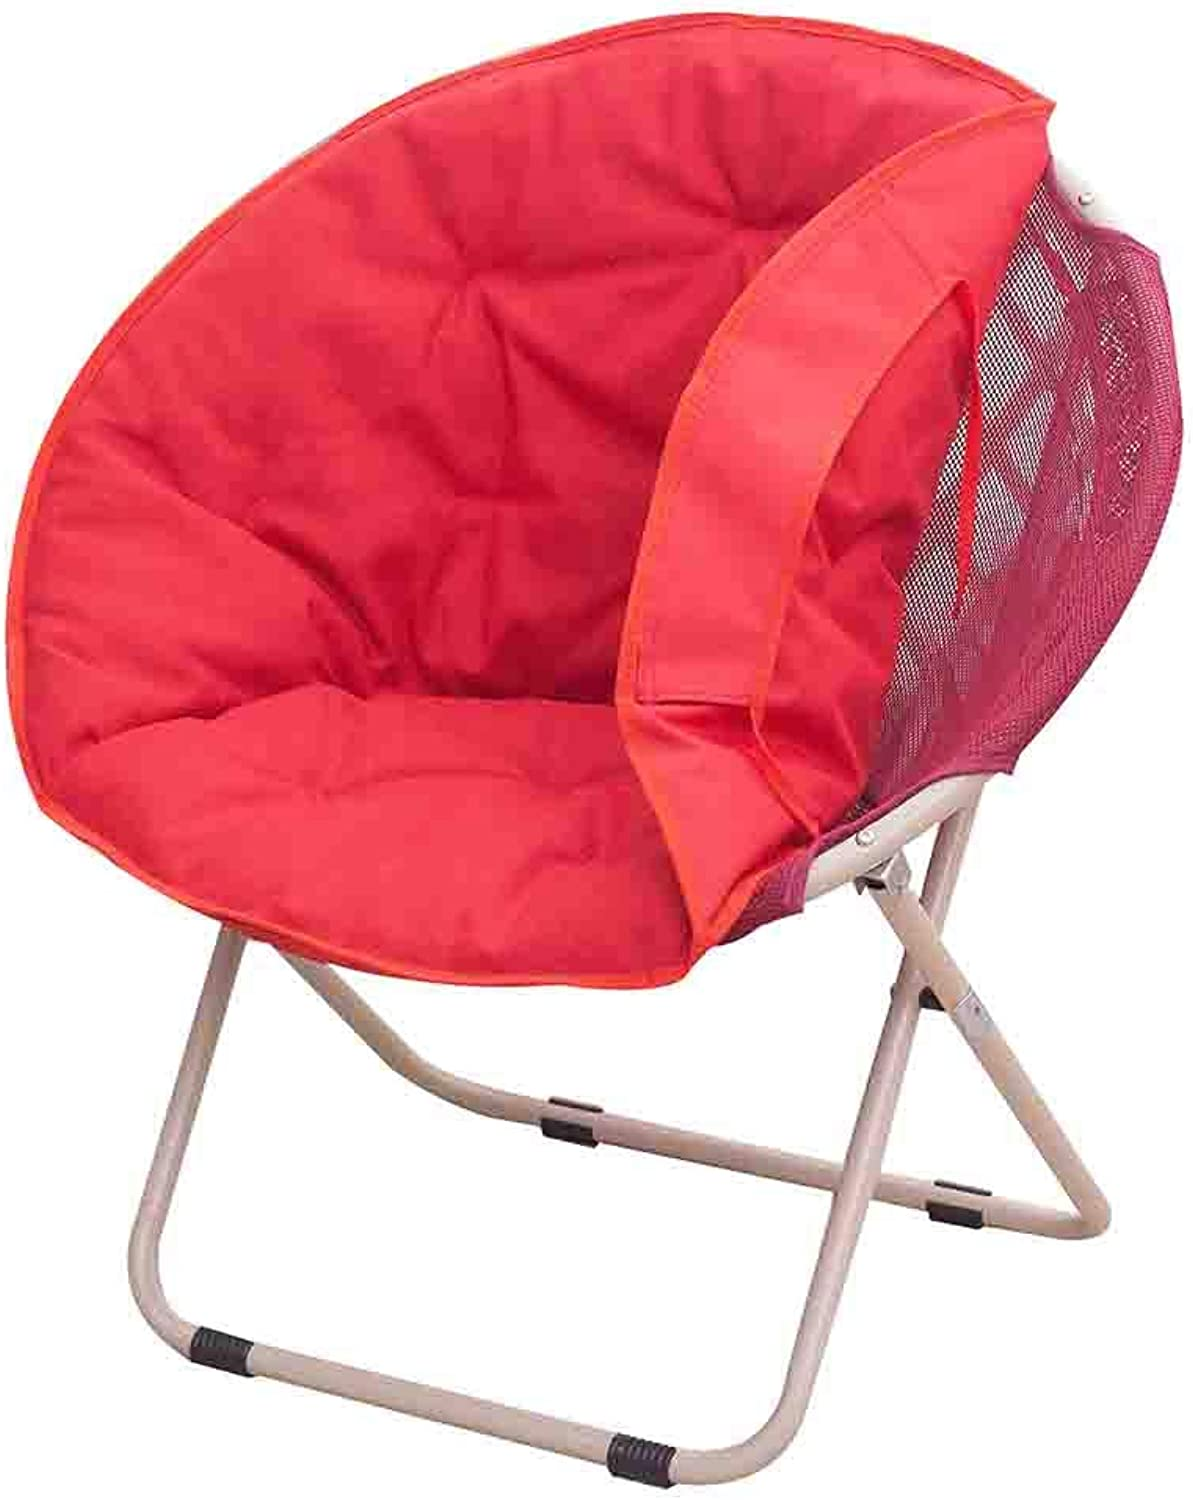 CAIJUN Chair Multifunction Foldable Removable Cloth Cover Large Comfortable Non-Slip Whole Outfit, 4 colors (color   RED, Size   52x51x76cm)